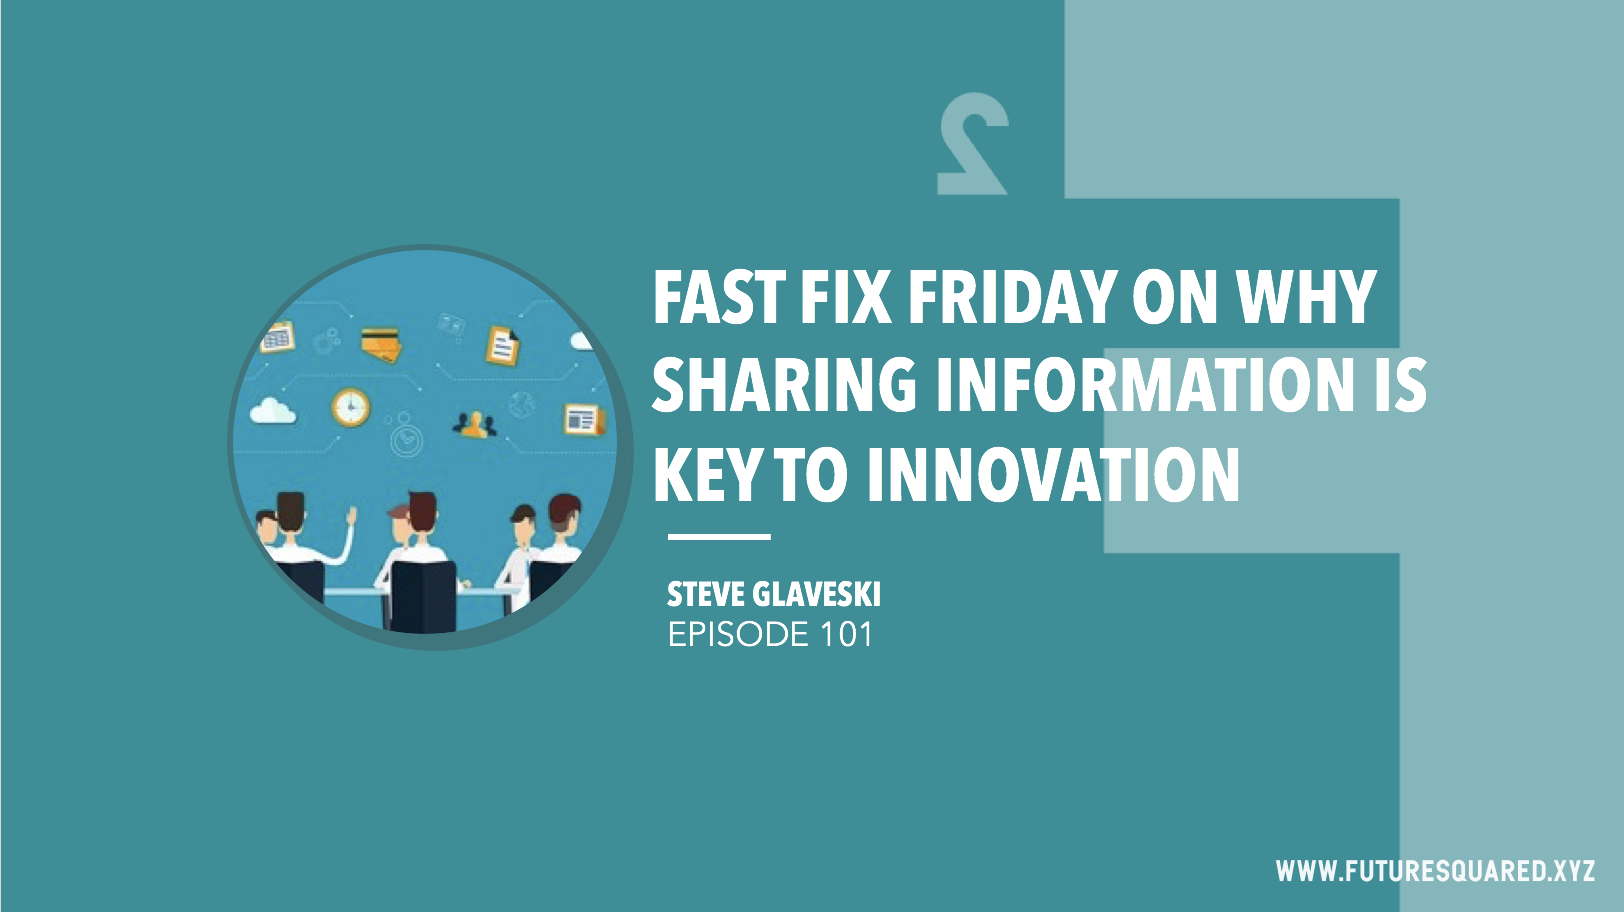 Future Squared Episode #101: Fast Fix Friday on Why Sharing Information is Key to Innovation